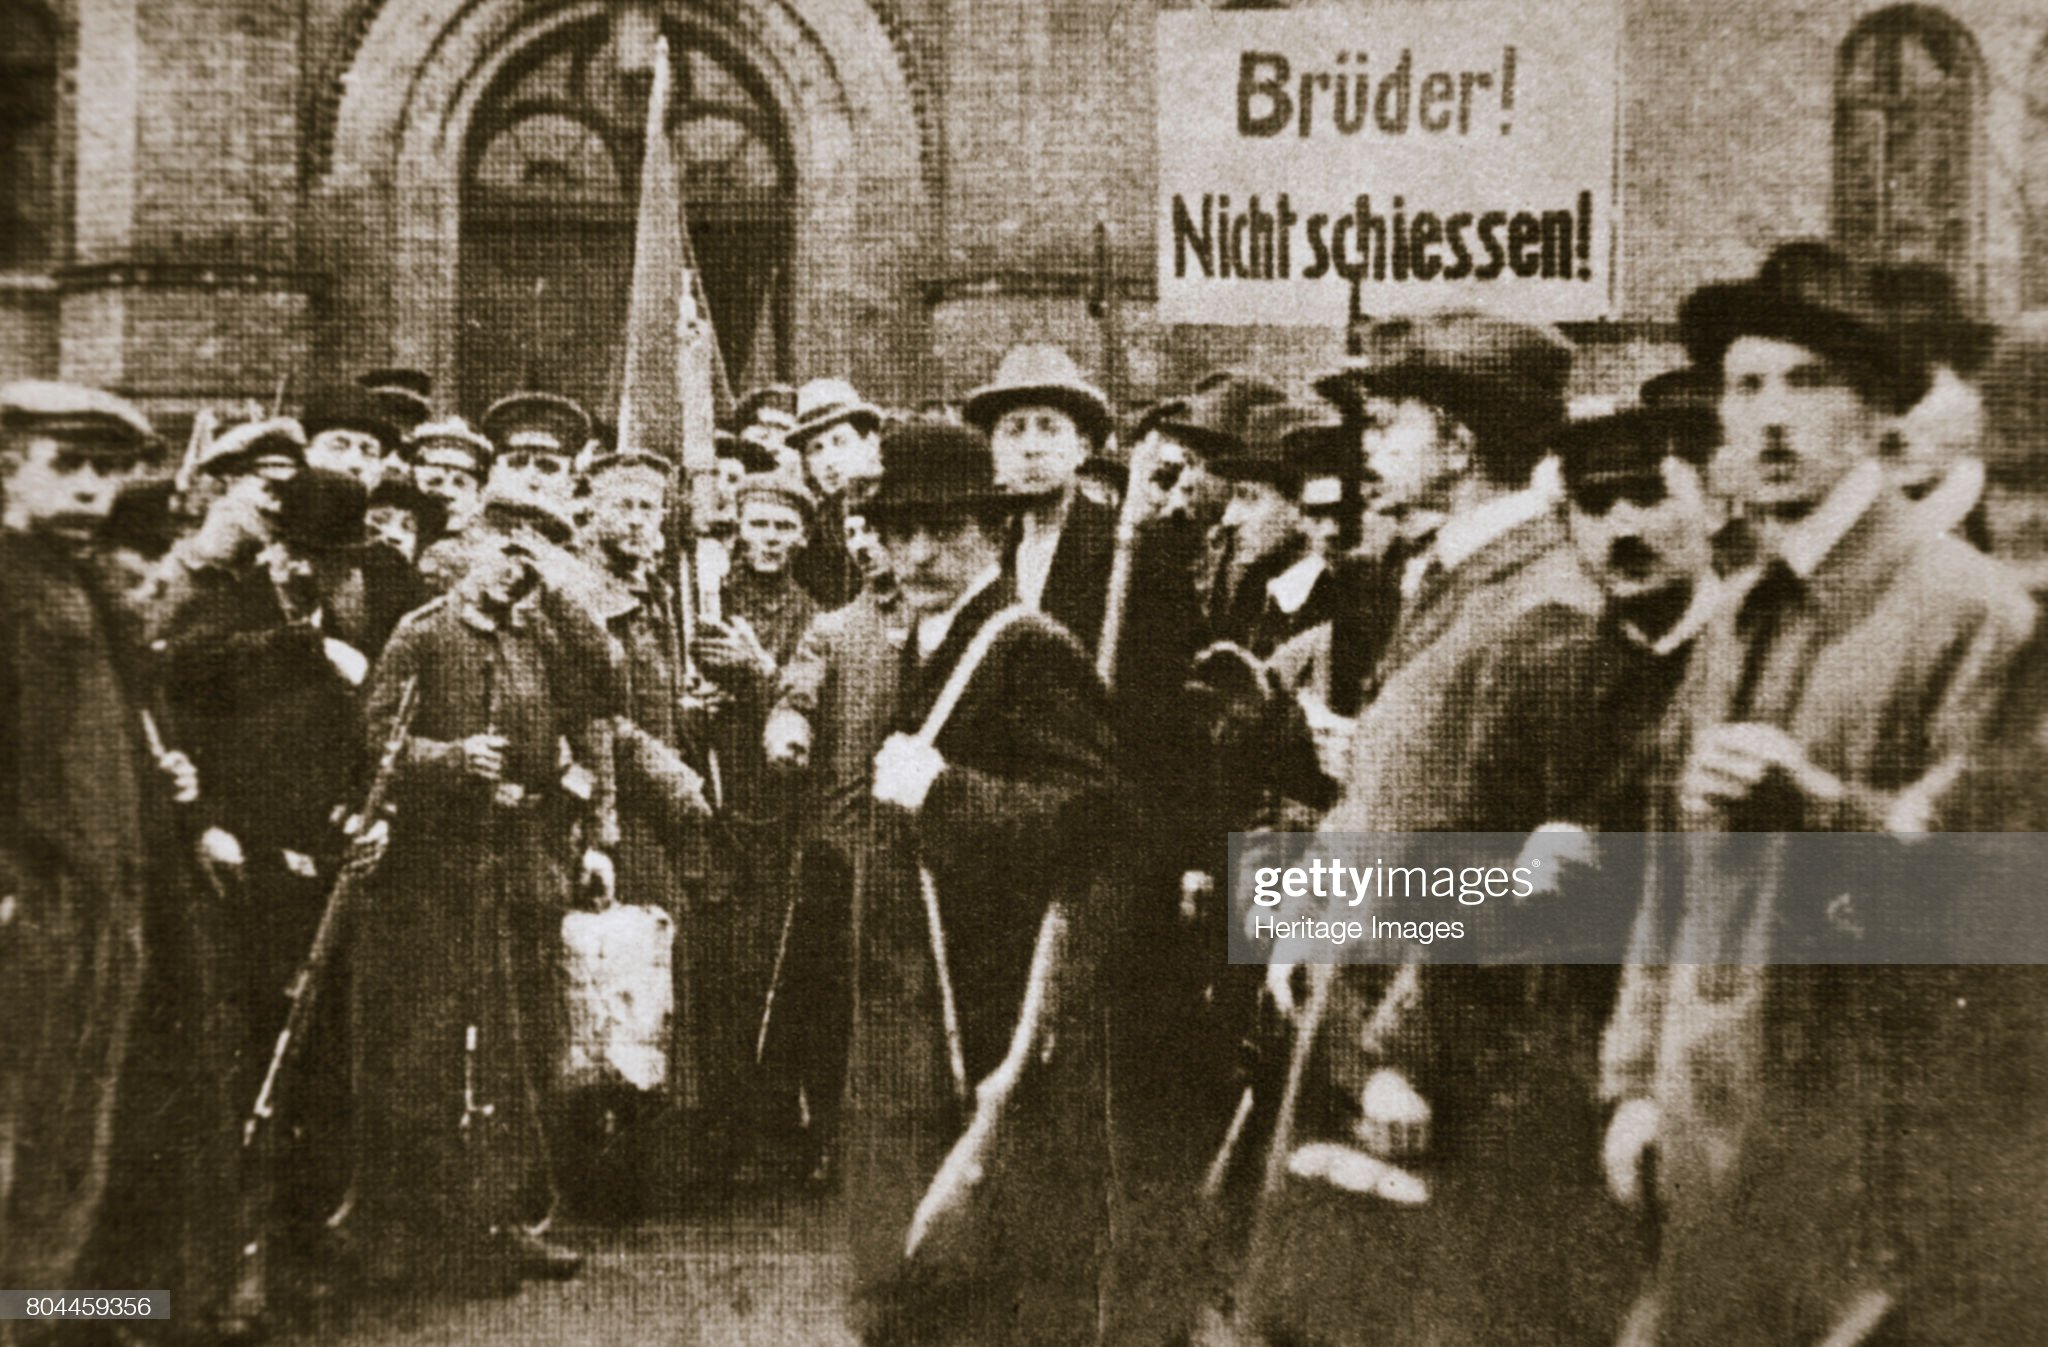 Brothers Don't Shoot!' Placard During The German Revolution Berlin circa 1918-circa 1919 : News Photo